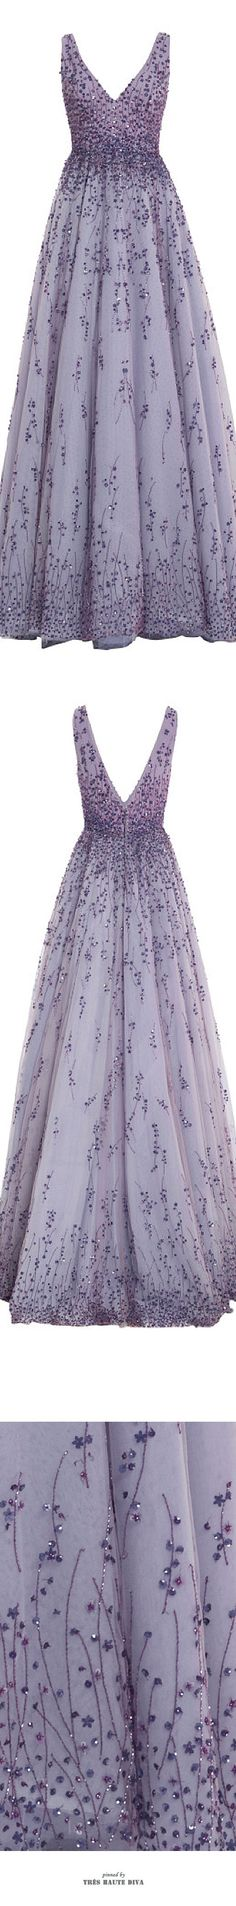 Monique Lhuillier Violet Embroidered Tulle V-Neck Ball Gown ♔ SS 2015